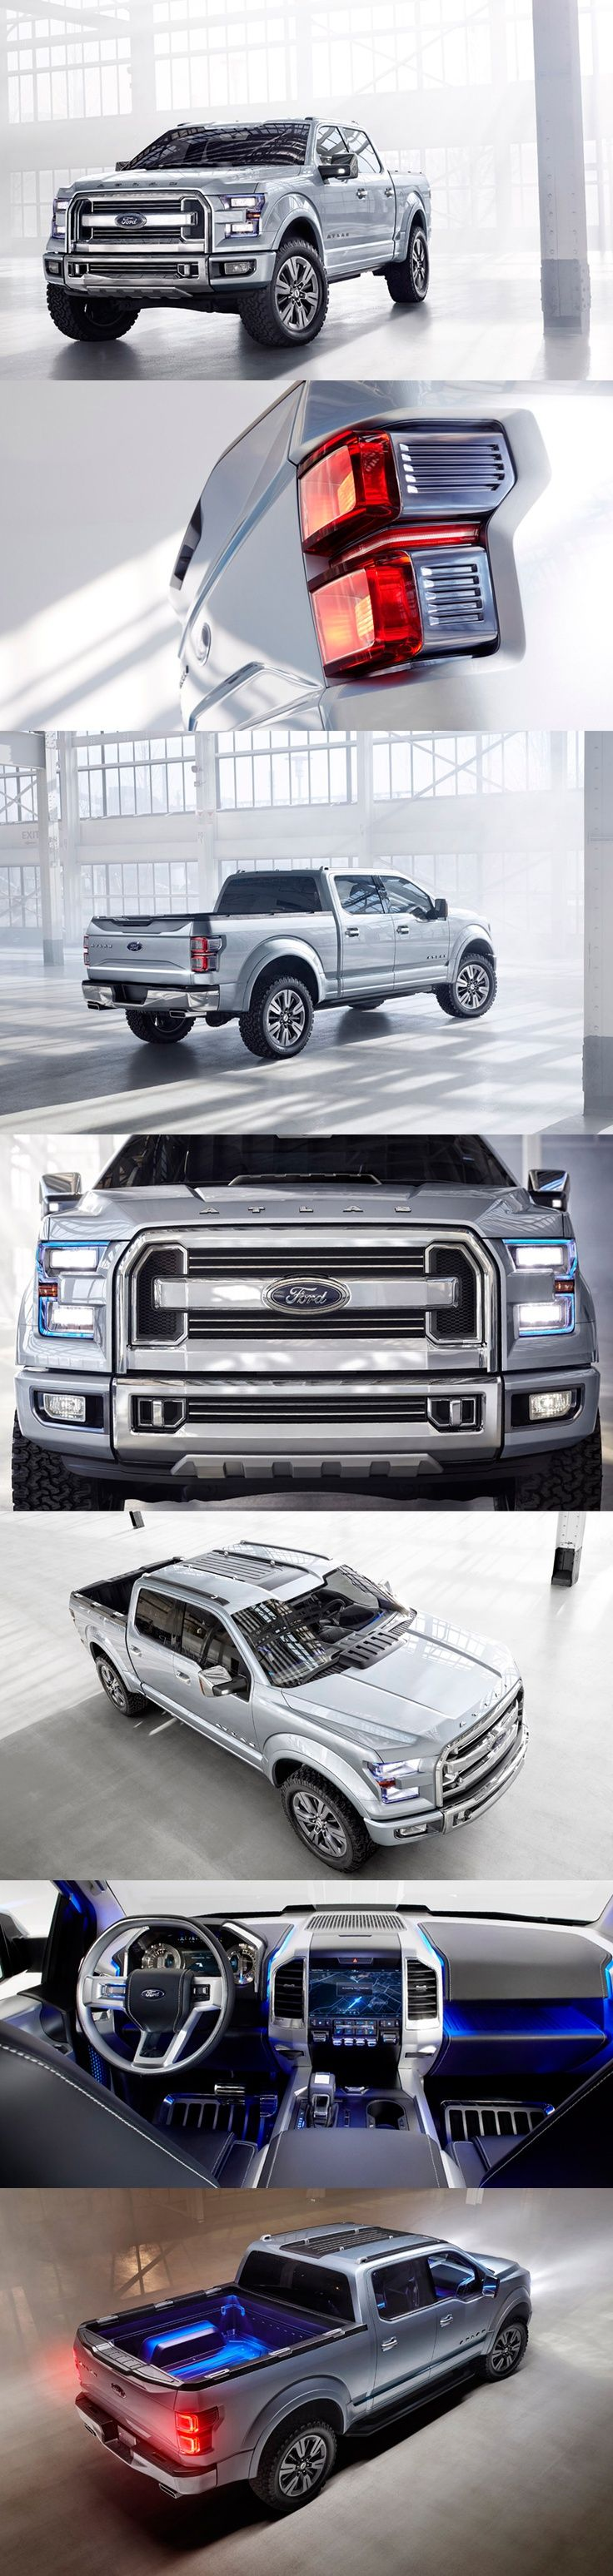 Ford Atlas 2014 concep